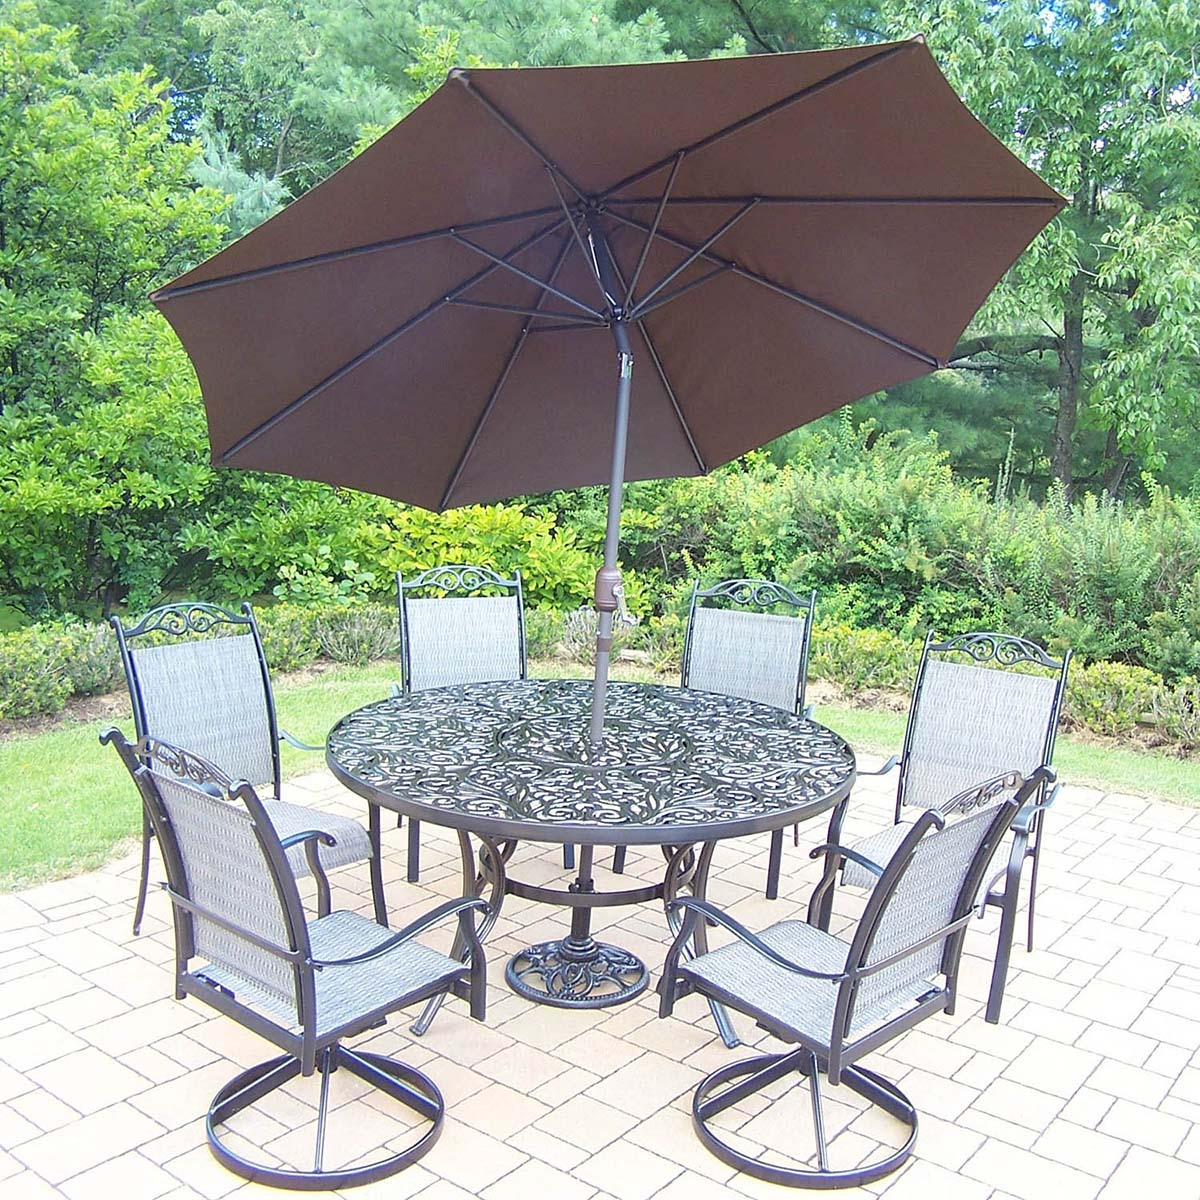 9pc Set: Table, 2 Rockers, 4 Chairs, Brown Umbrella